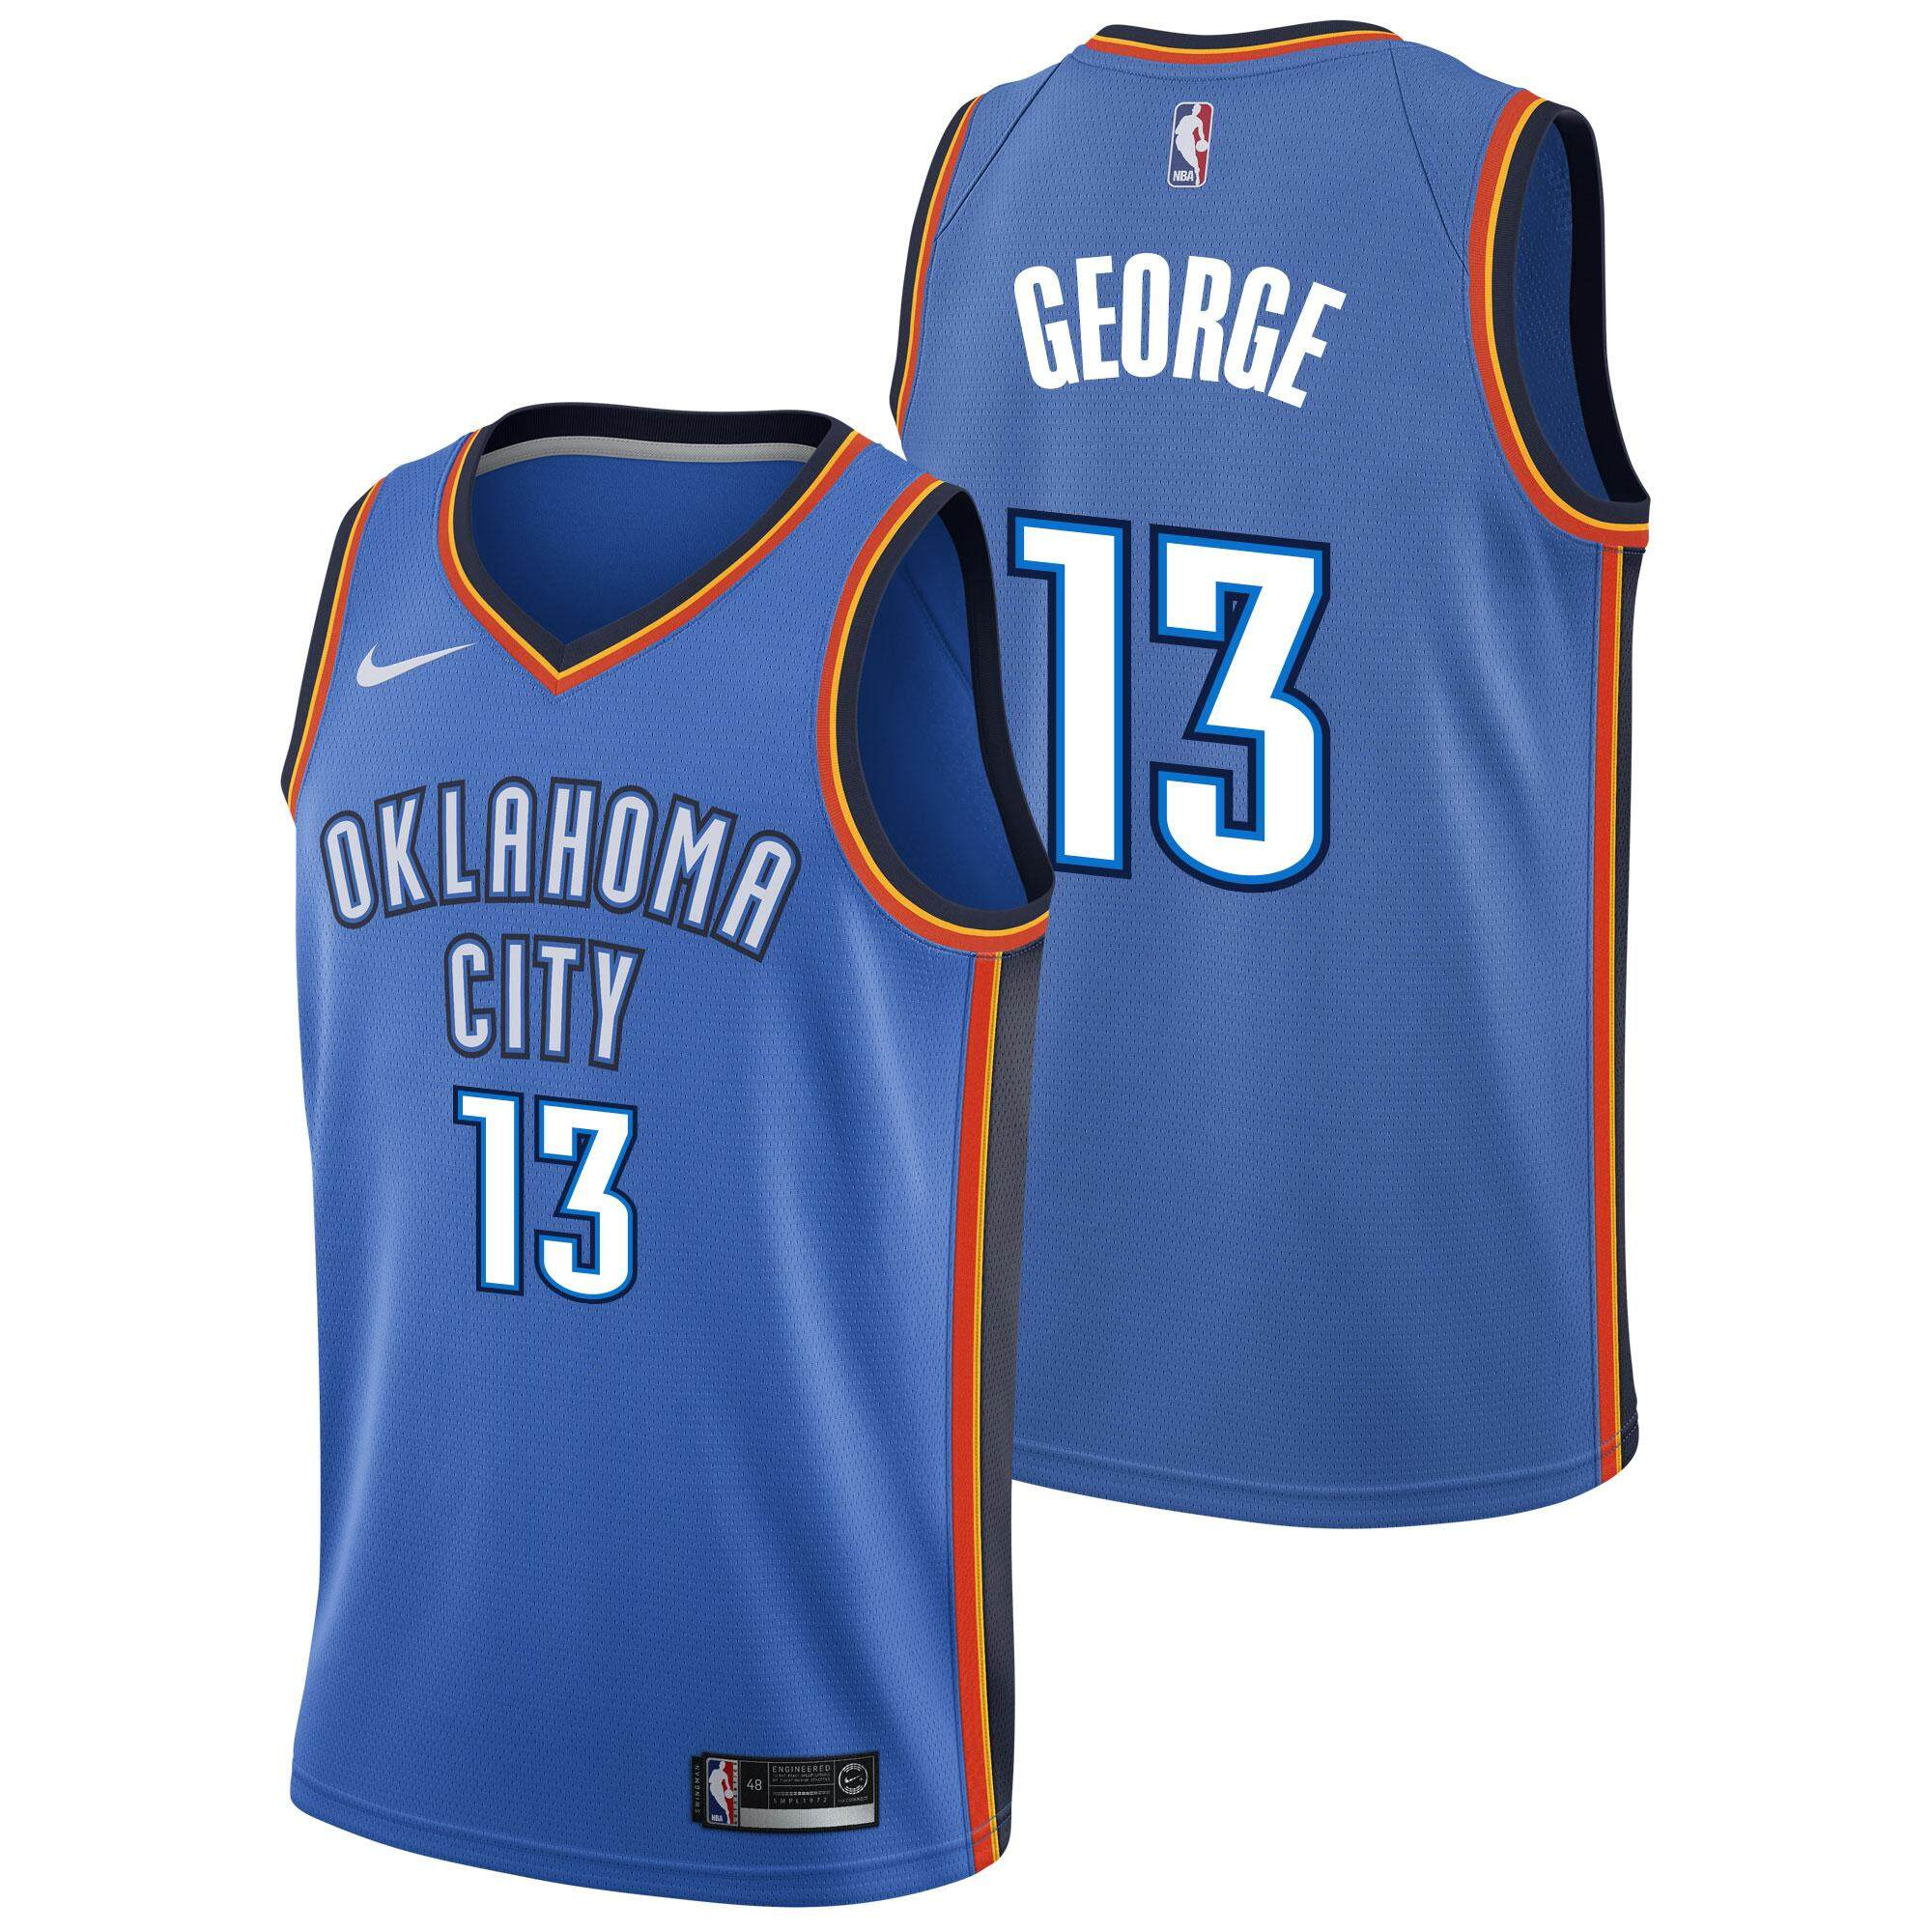 d3758be3cb90 Product details of For Man Basketball Clothes Swingman Jersey Number 13  Oklahoma City Thunder Paul George Official Fashion Authentic Grey City  Edition Int S